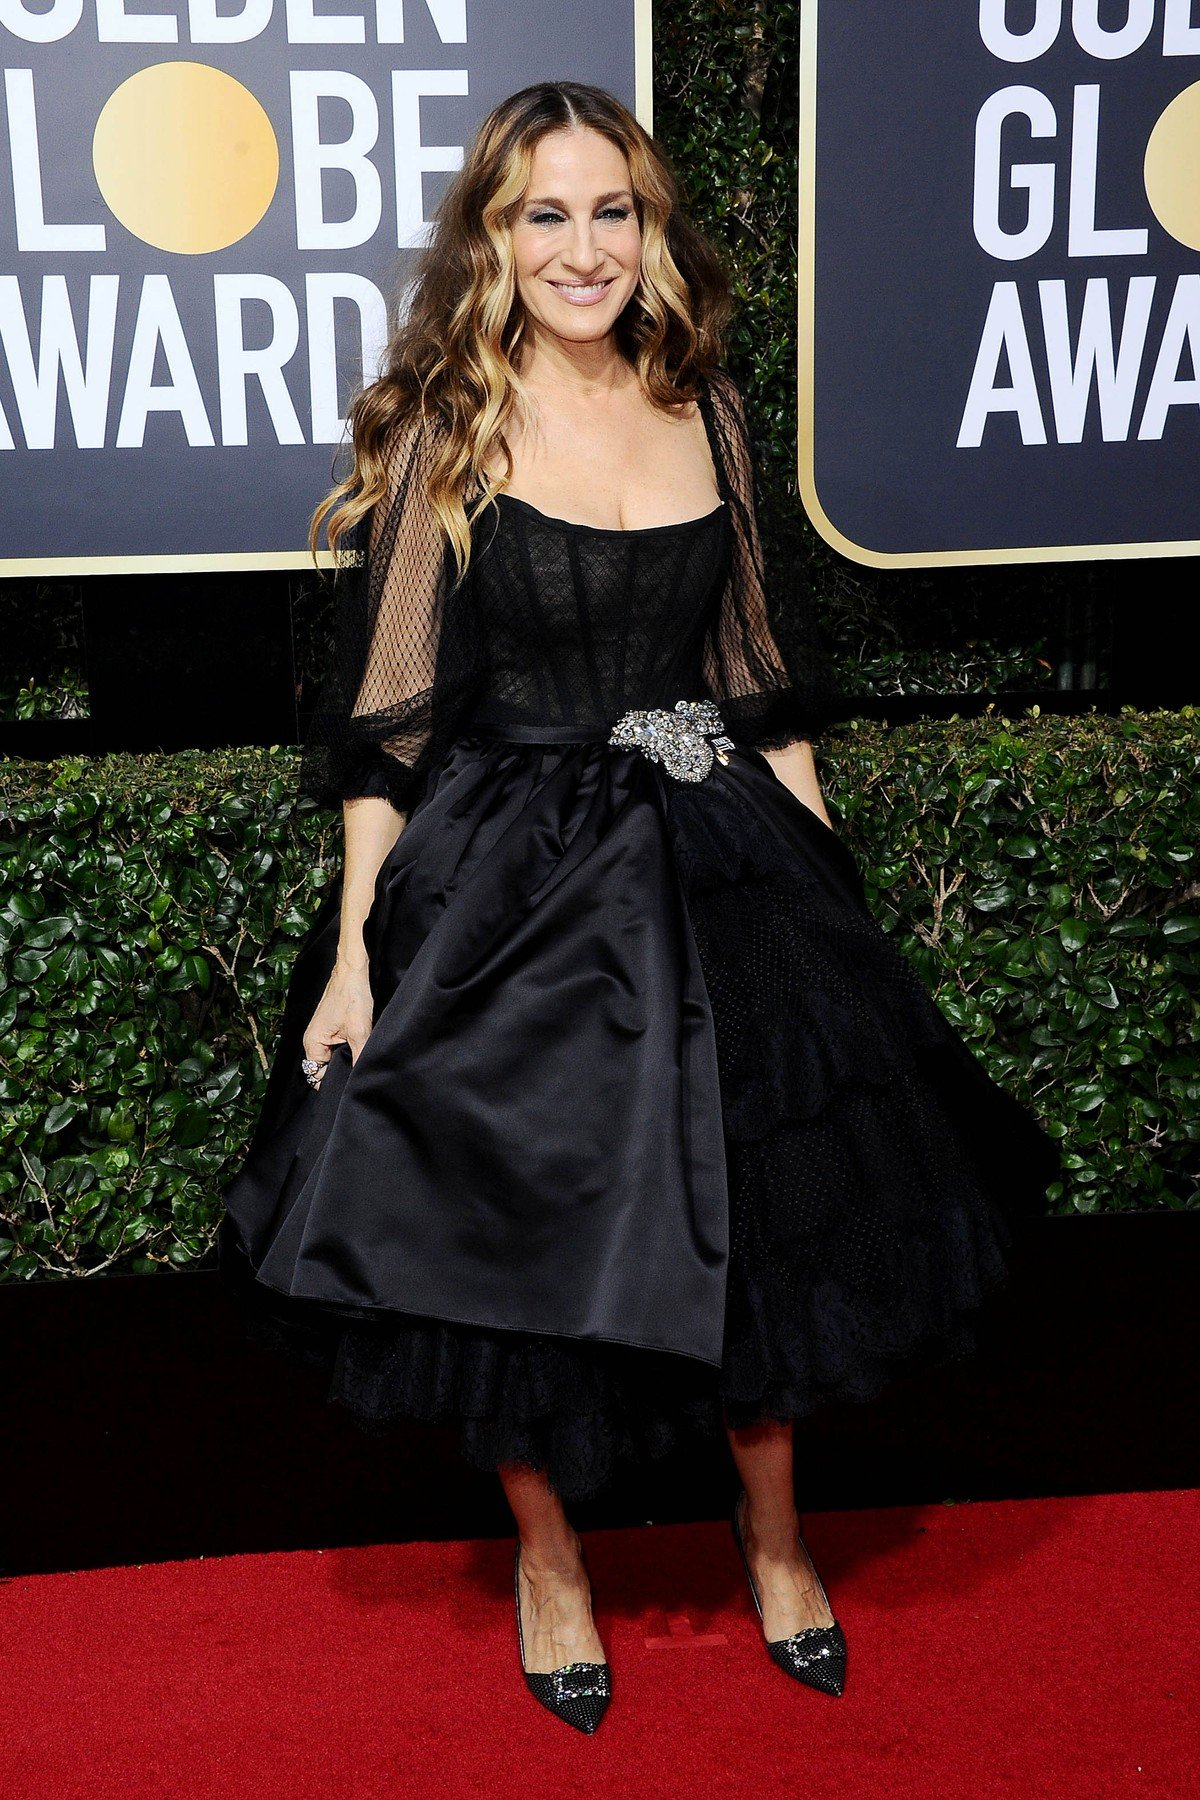 , Beverly Hills, CA -20180107 - The 75th Golden Globe Awards - Arrivals at The Beverly Hilton  -PICTURED: Sarah Jessica Parker -, Image: 359507906, License: Rights-managed, Restrictions: , Model Release: no, Credit line: Profimedia, INSTAR Images